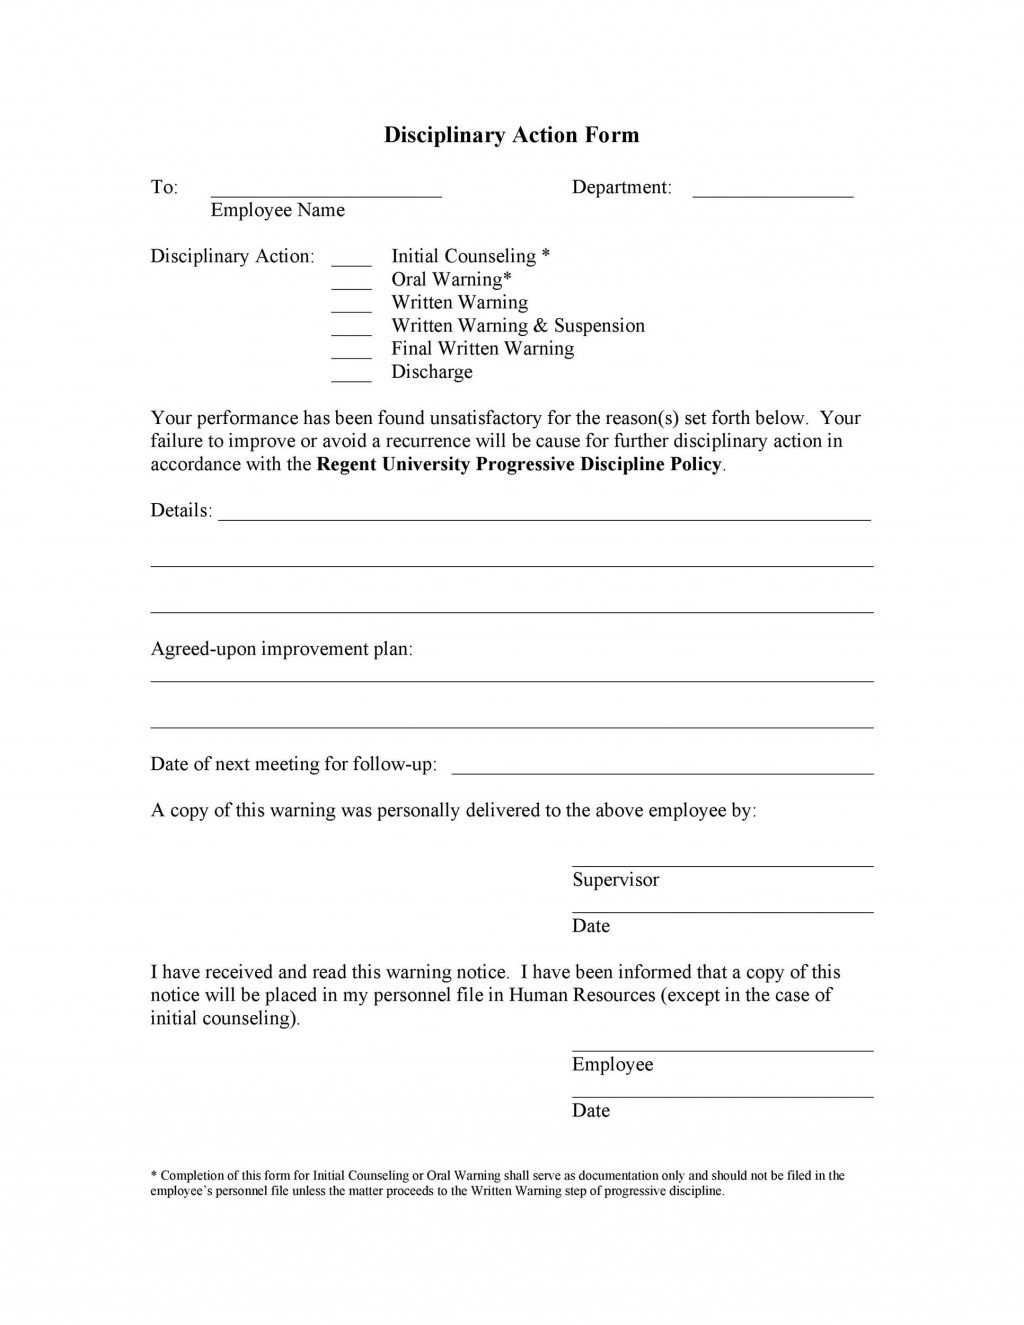 003 Exceptional Employee Discipline Form Template Concept  Free Disciplinary Letter ActionLarge